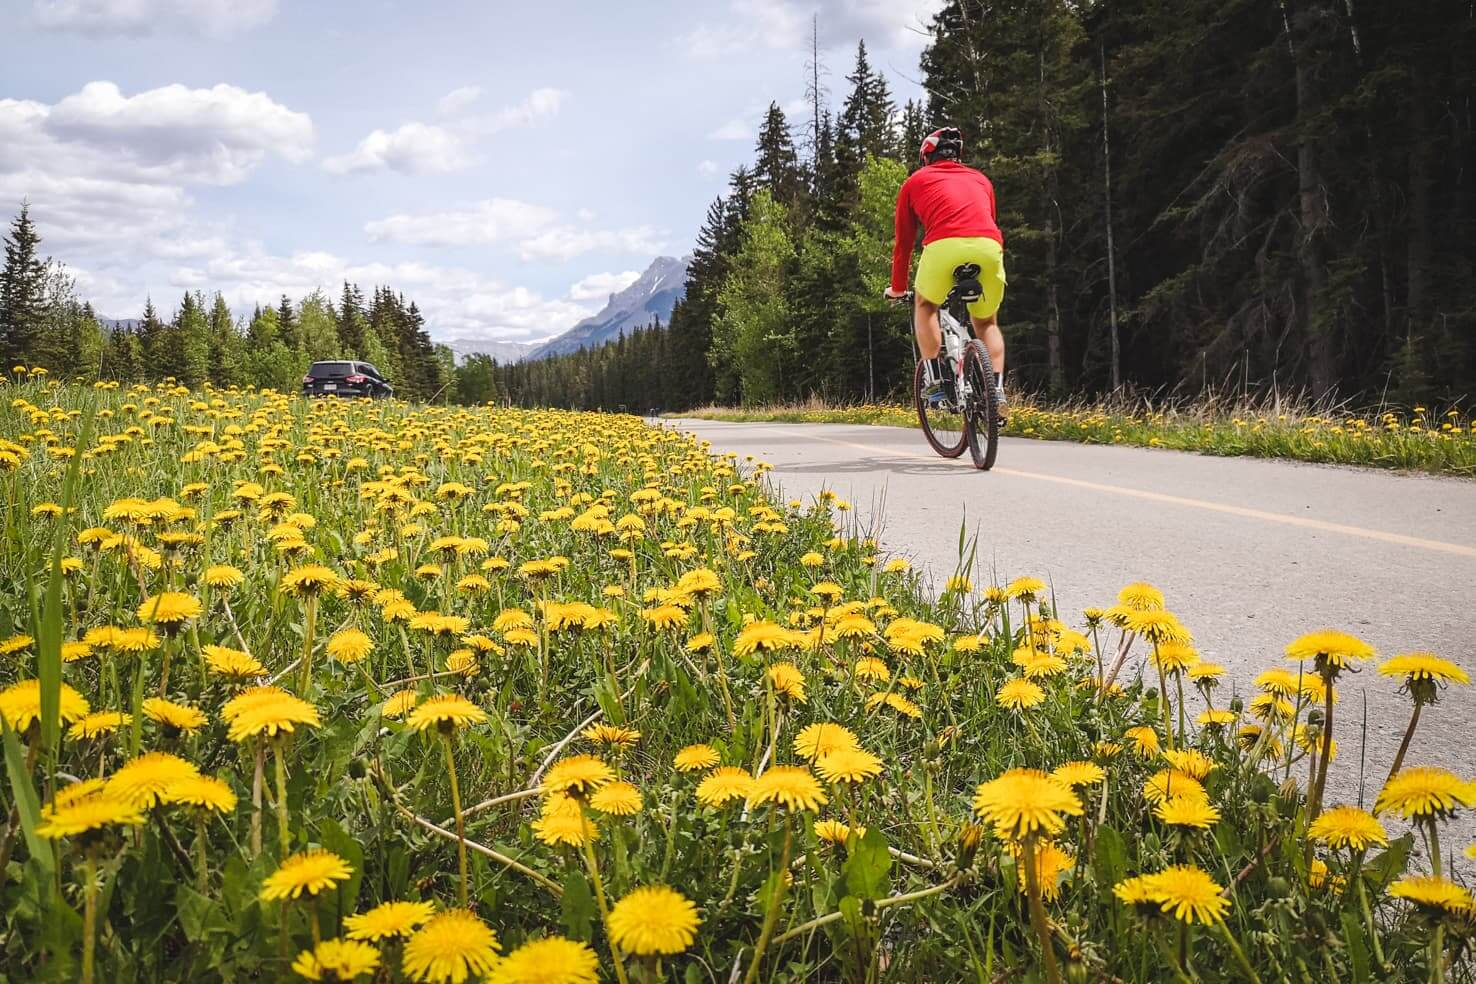 Legacy trail, biking from Banff to Canmore with an adventurous twist